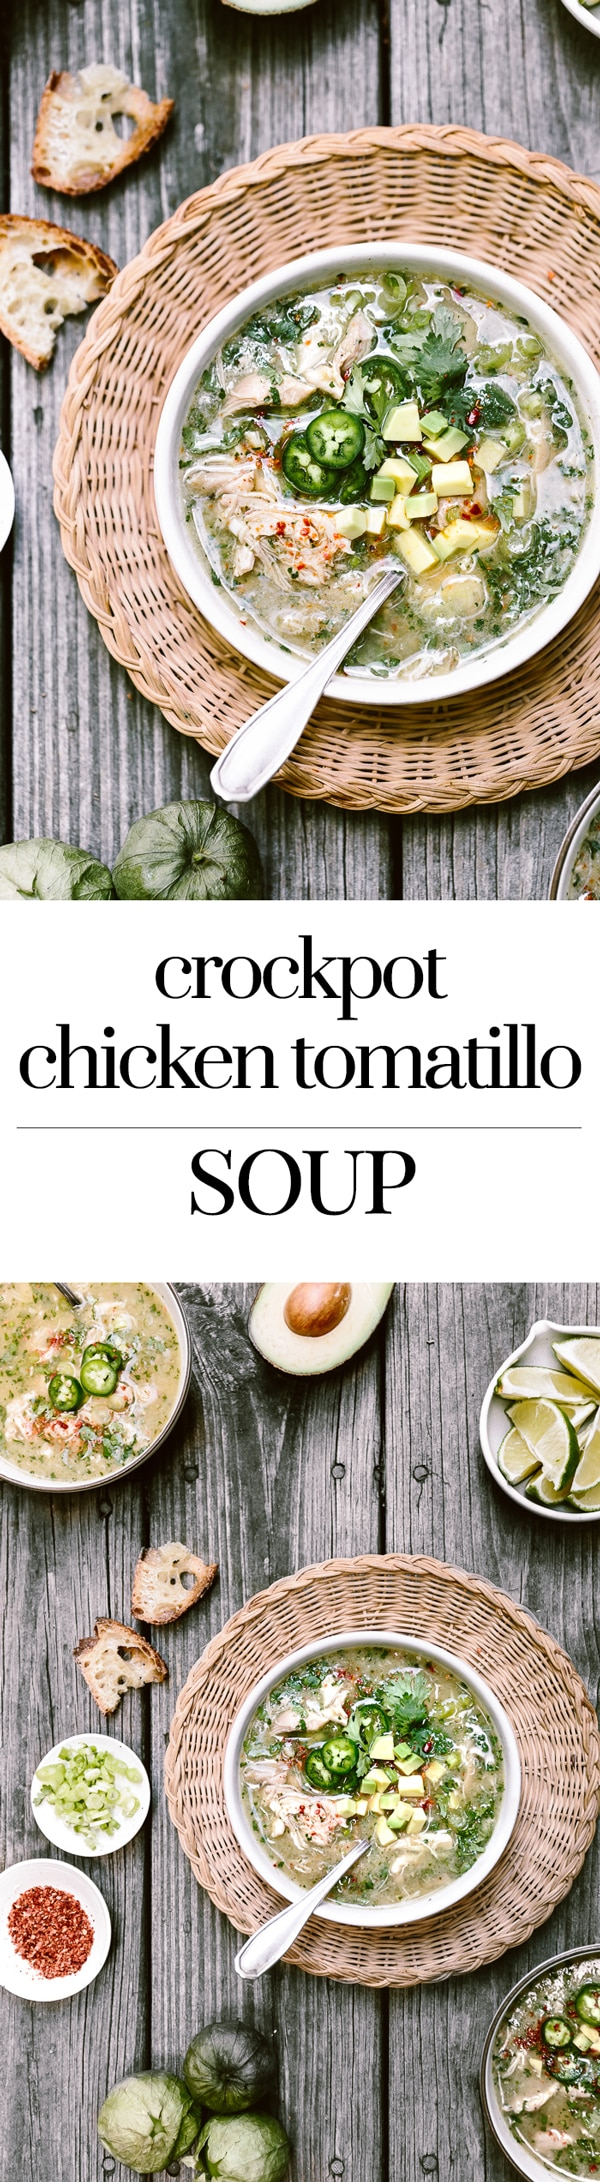 Crockpot Chicken Tomatilla Soup Recipe. Place all the recipes in your slow cooker and have a bowl of hearty soup ready in 8 hours.